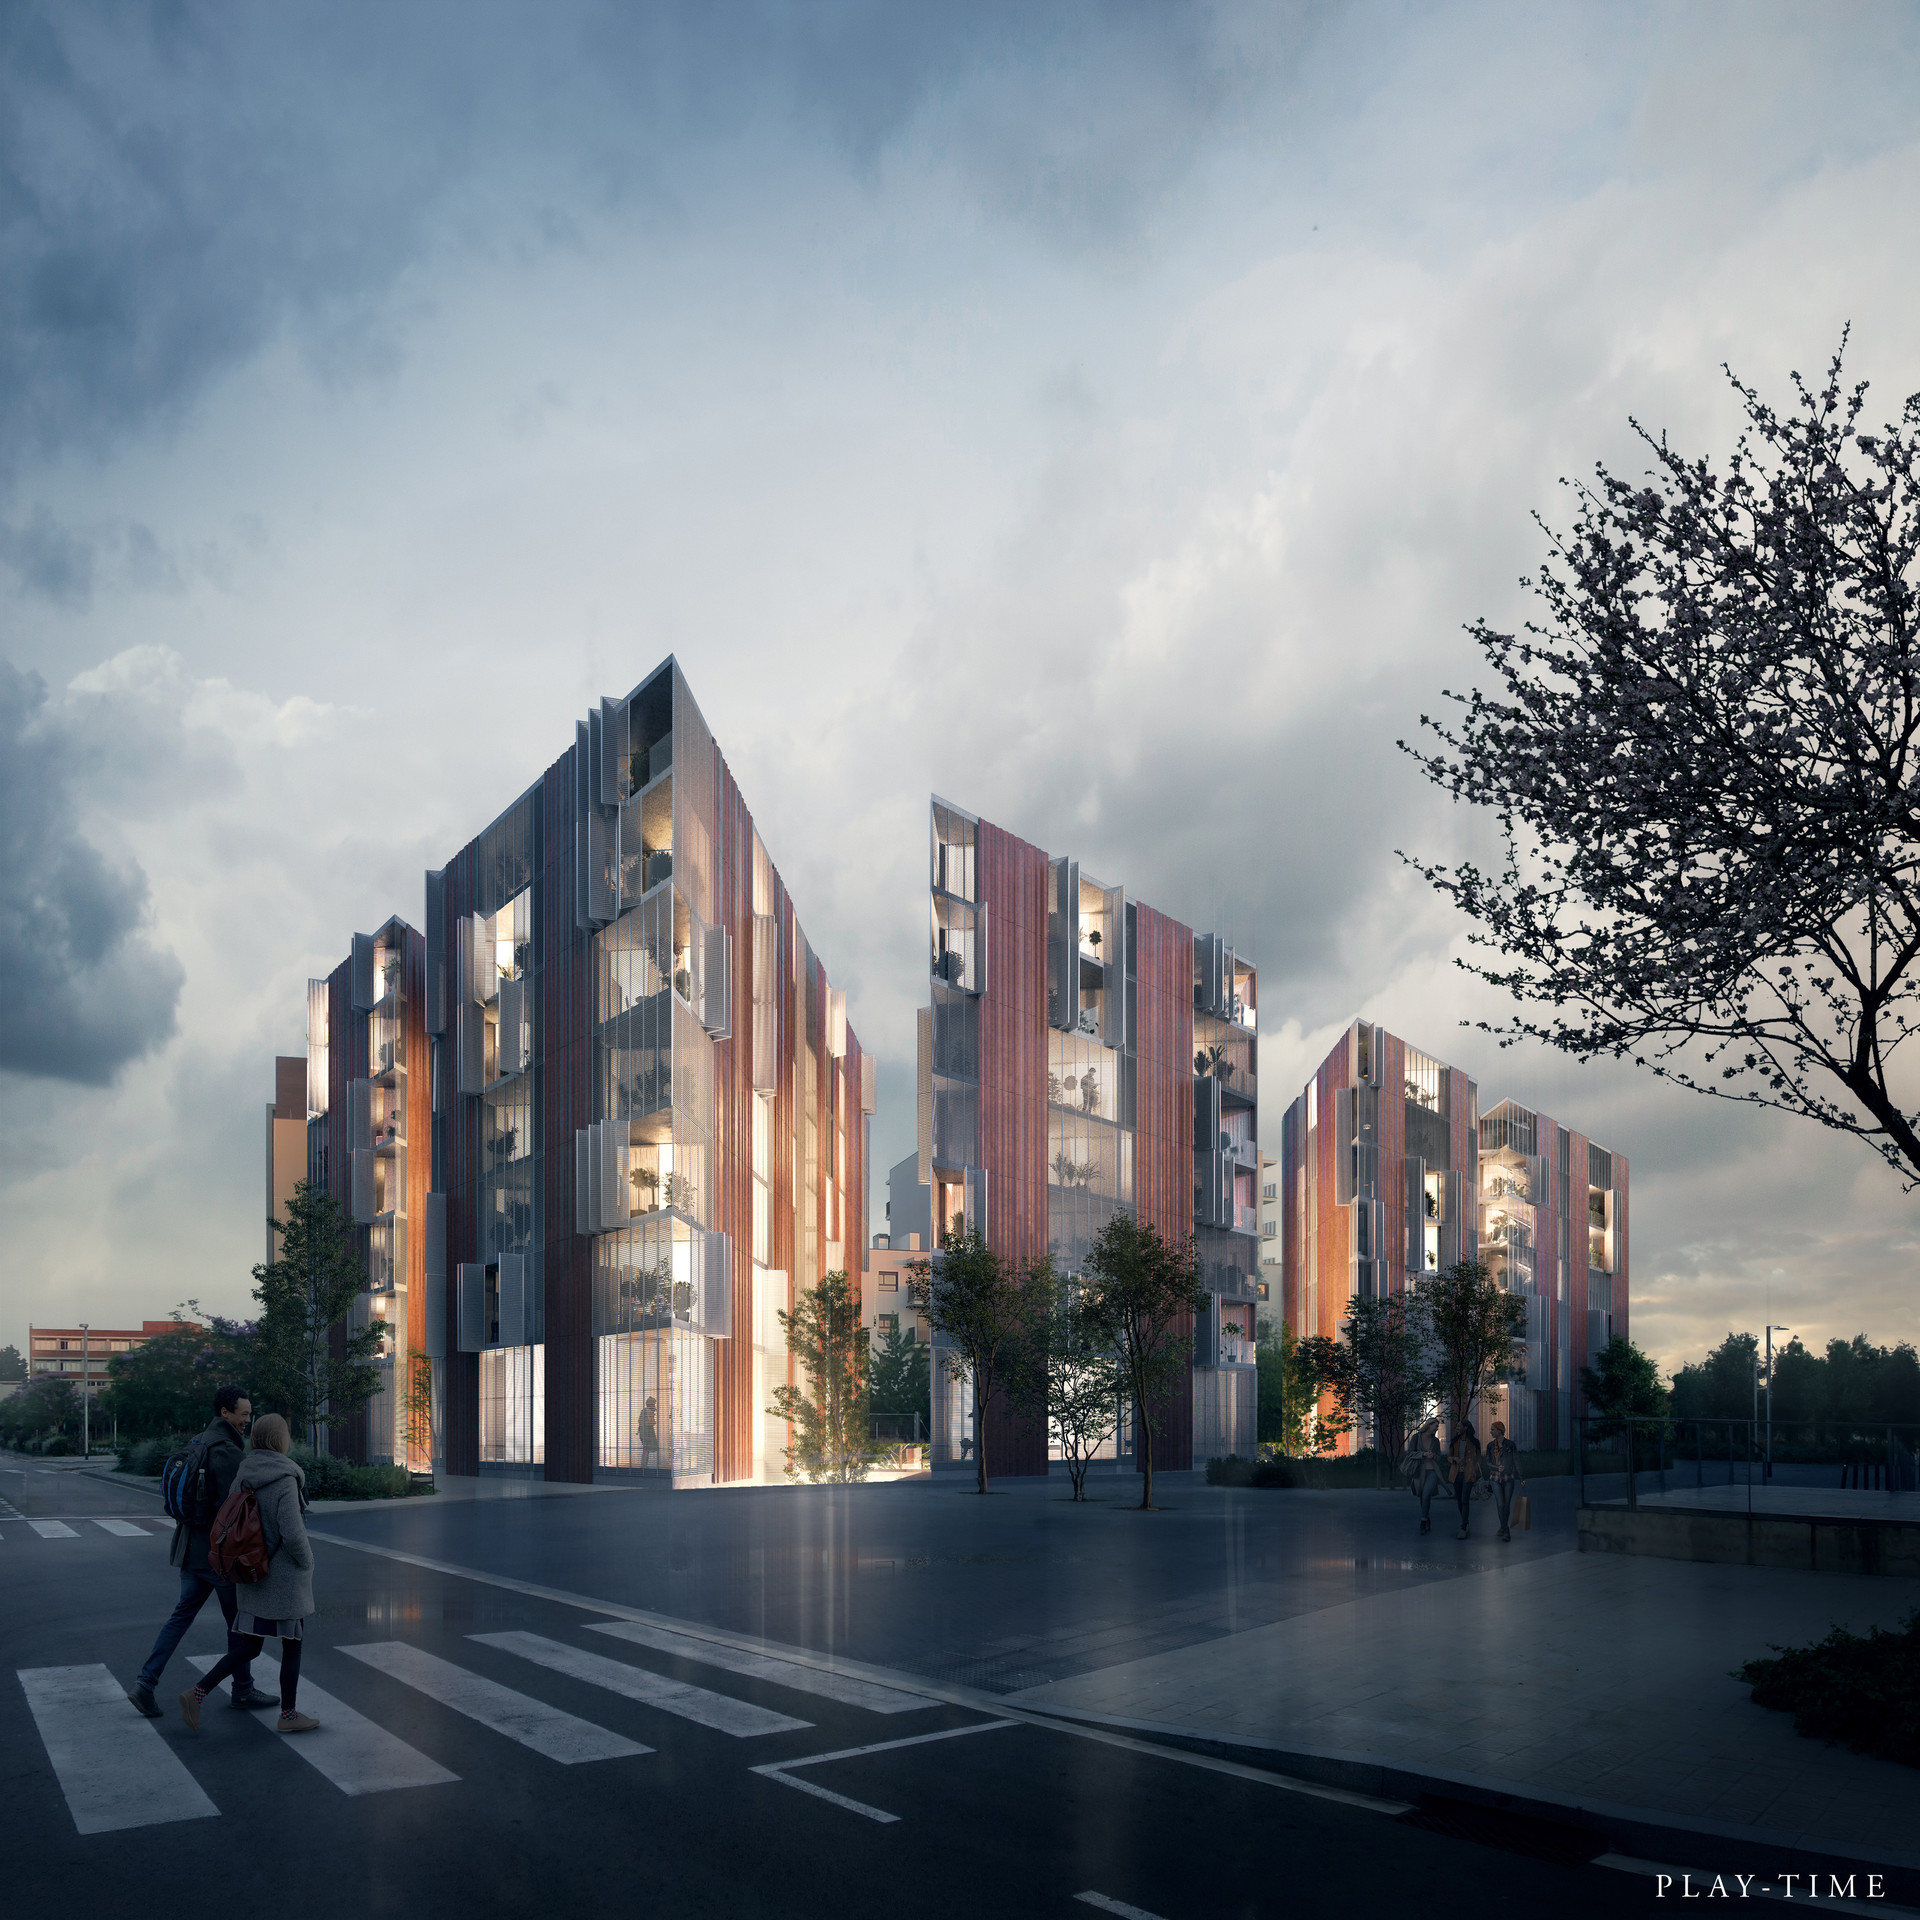 Play time architectural imagery playtime mias ulldecona 1stprize